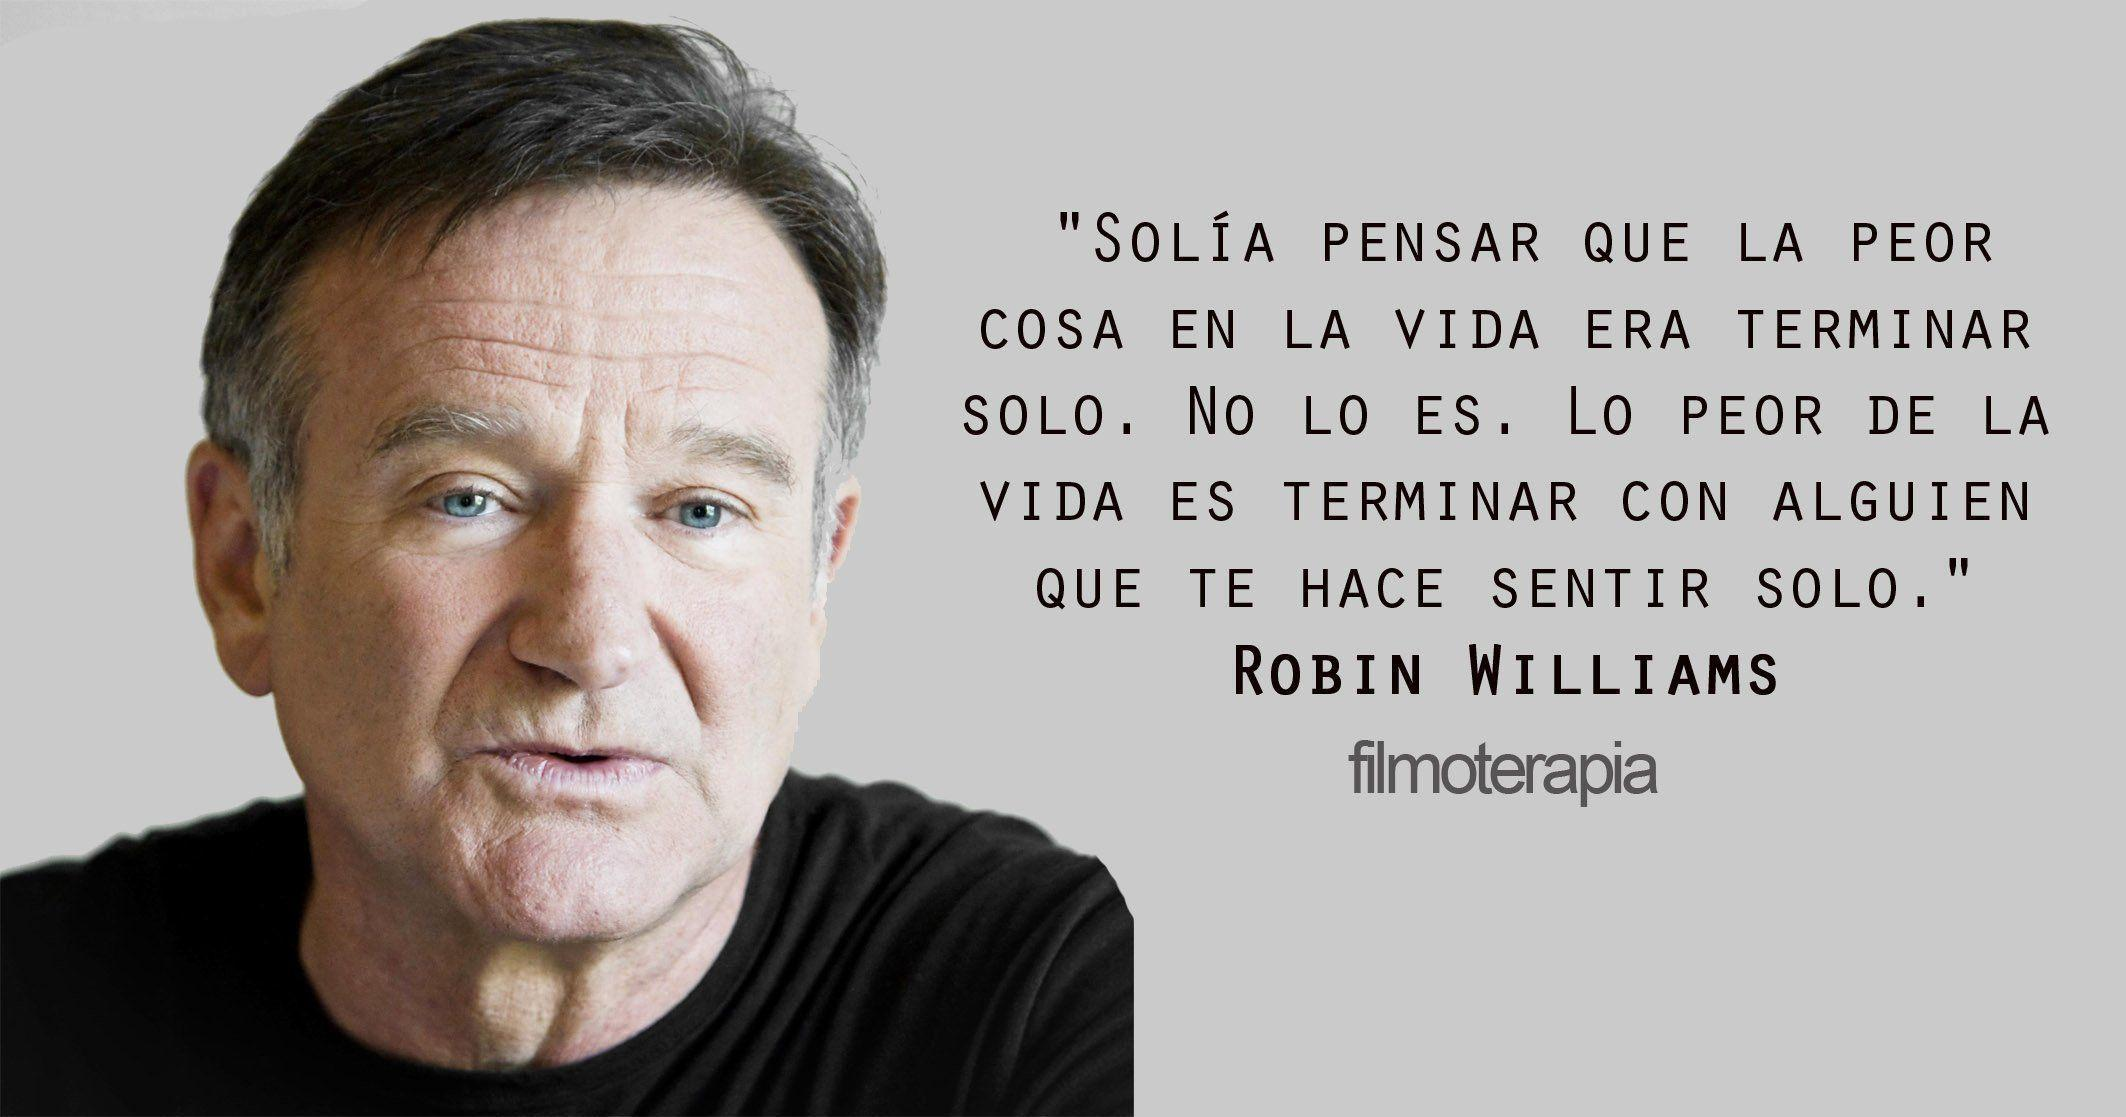 ROBIN WILLIAMS comedy comedian actor wallpapers